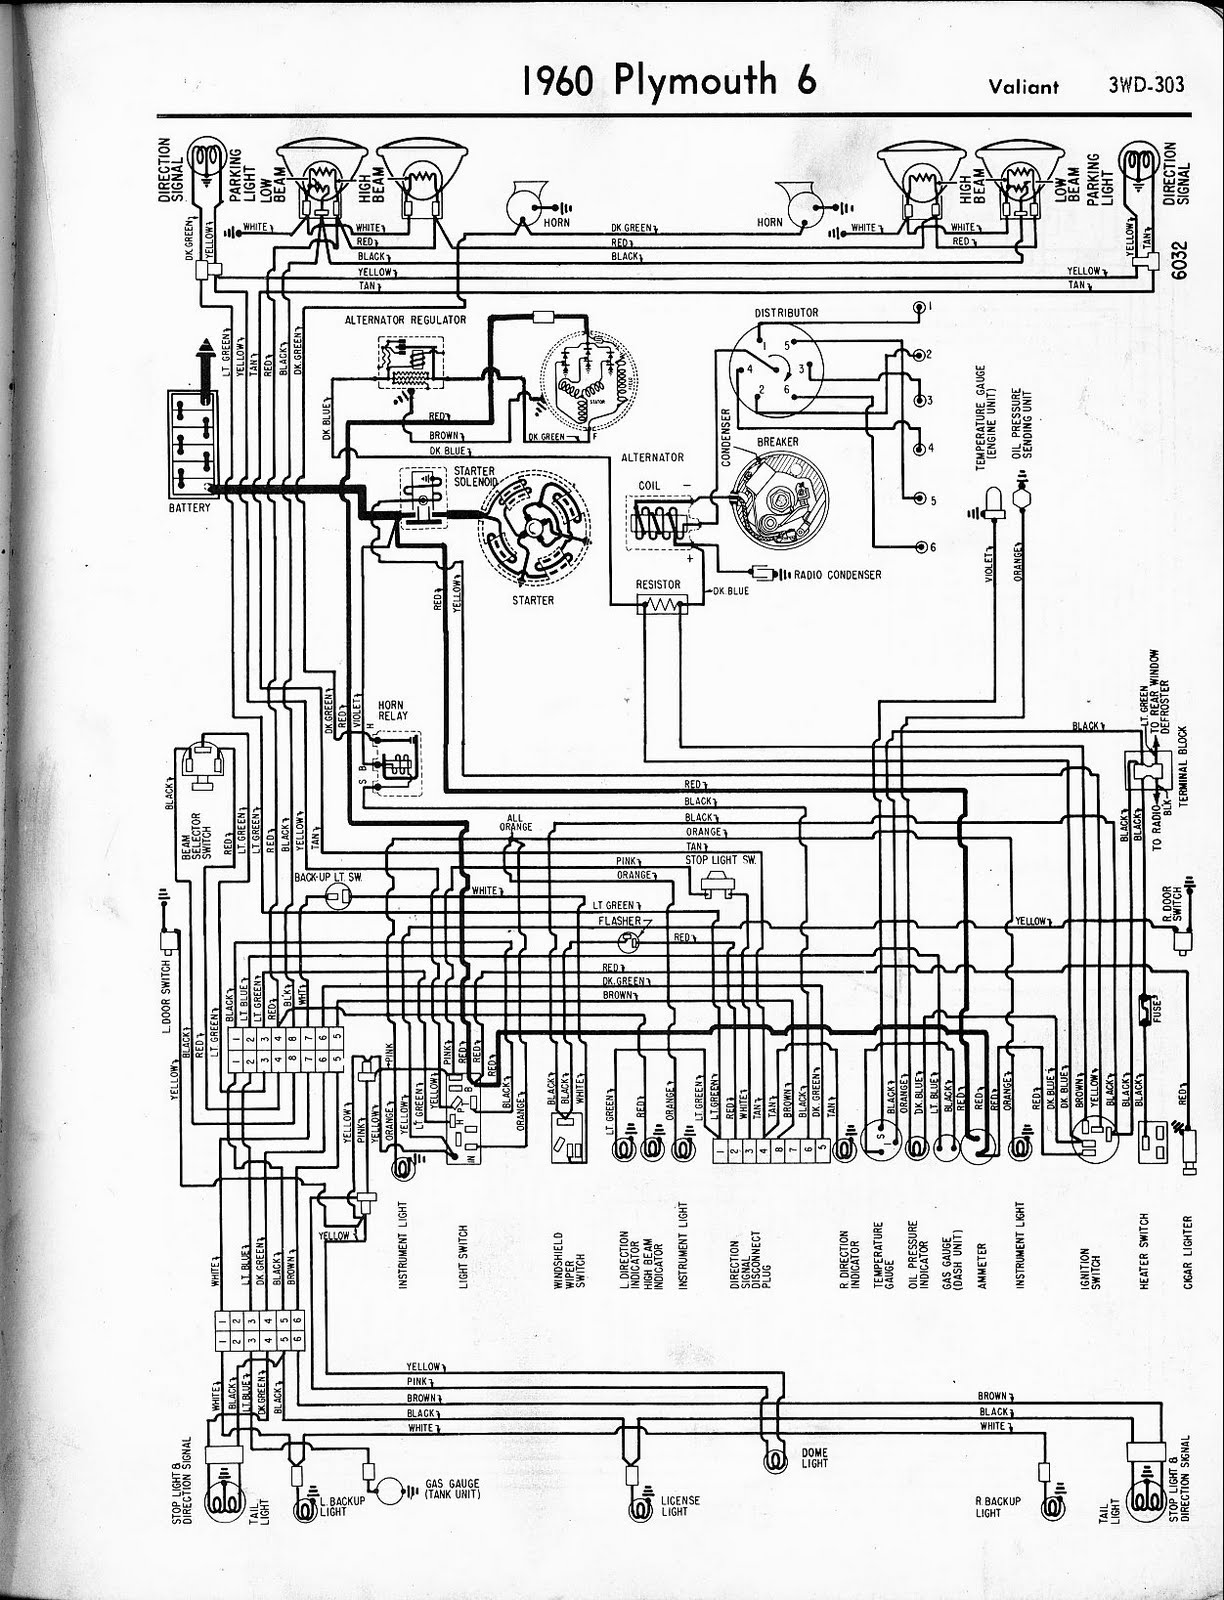 cj lancer wiring diagram double dimmer switch uk free auto april 2011